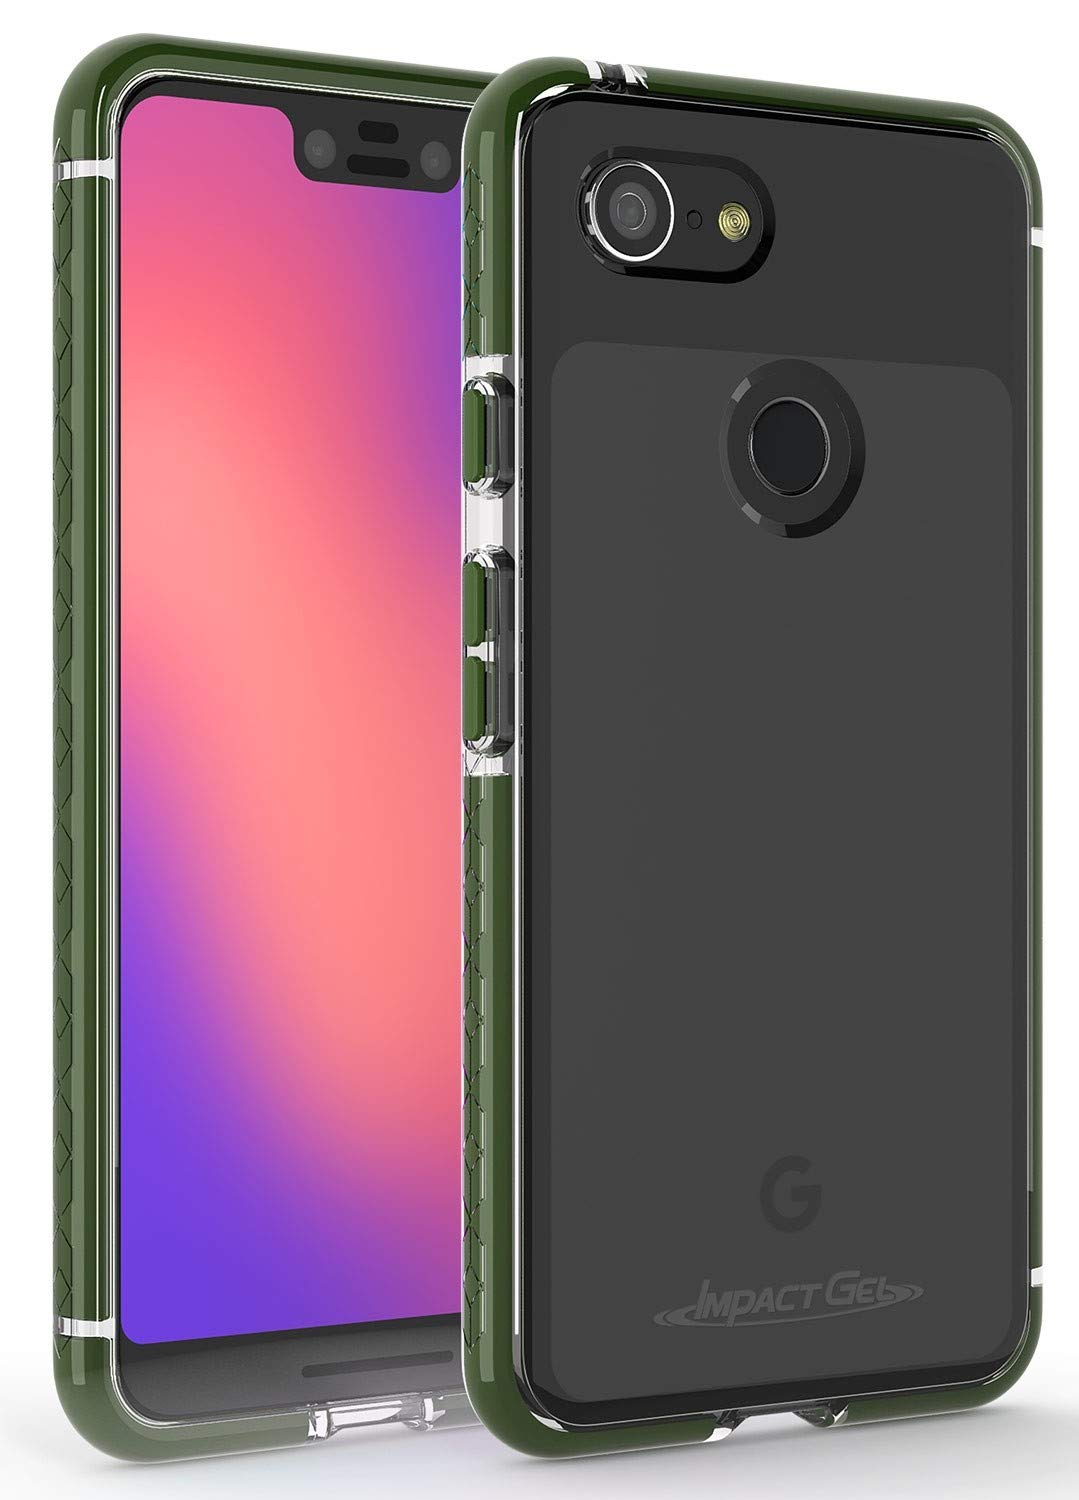 Amazon.com: Gel de impacto compatible con Google Pixel 3 XL ...